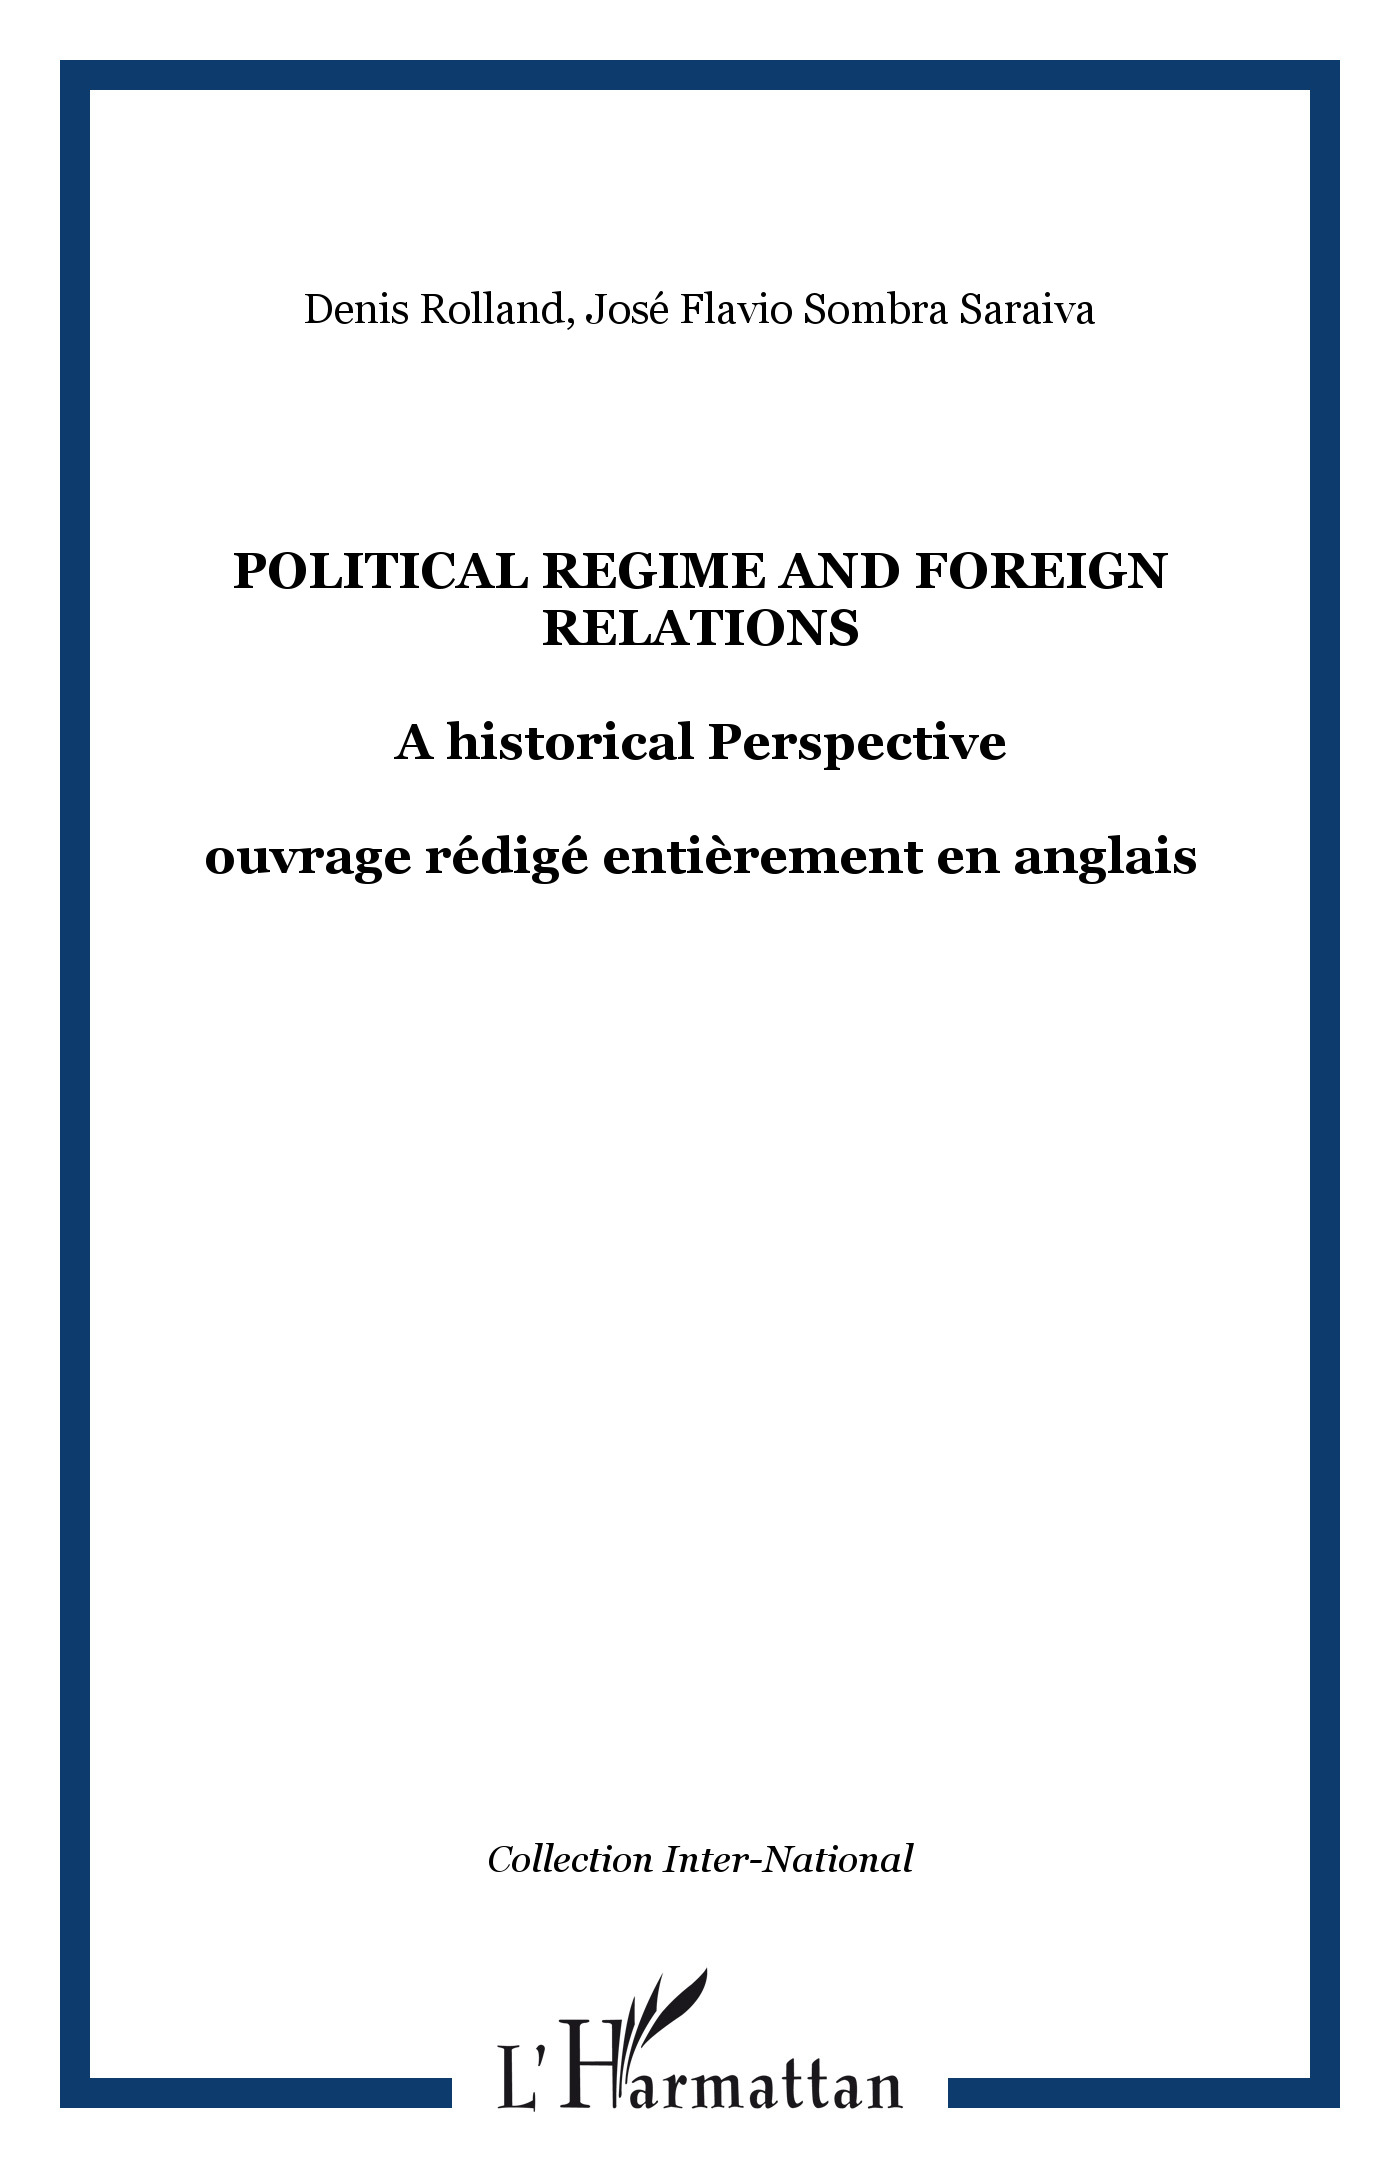 Political regime and foreign relations